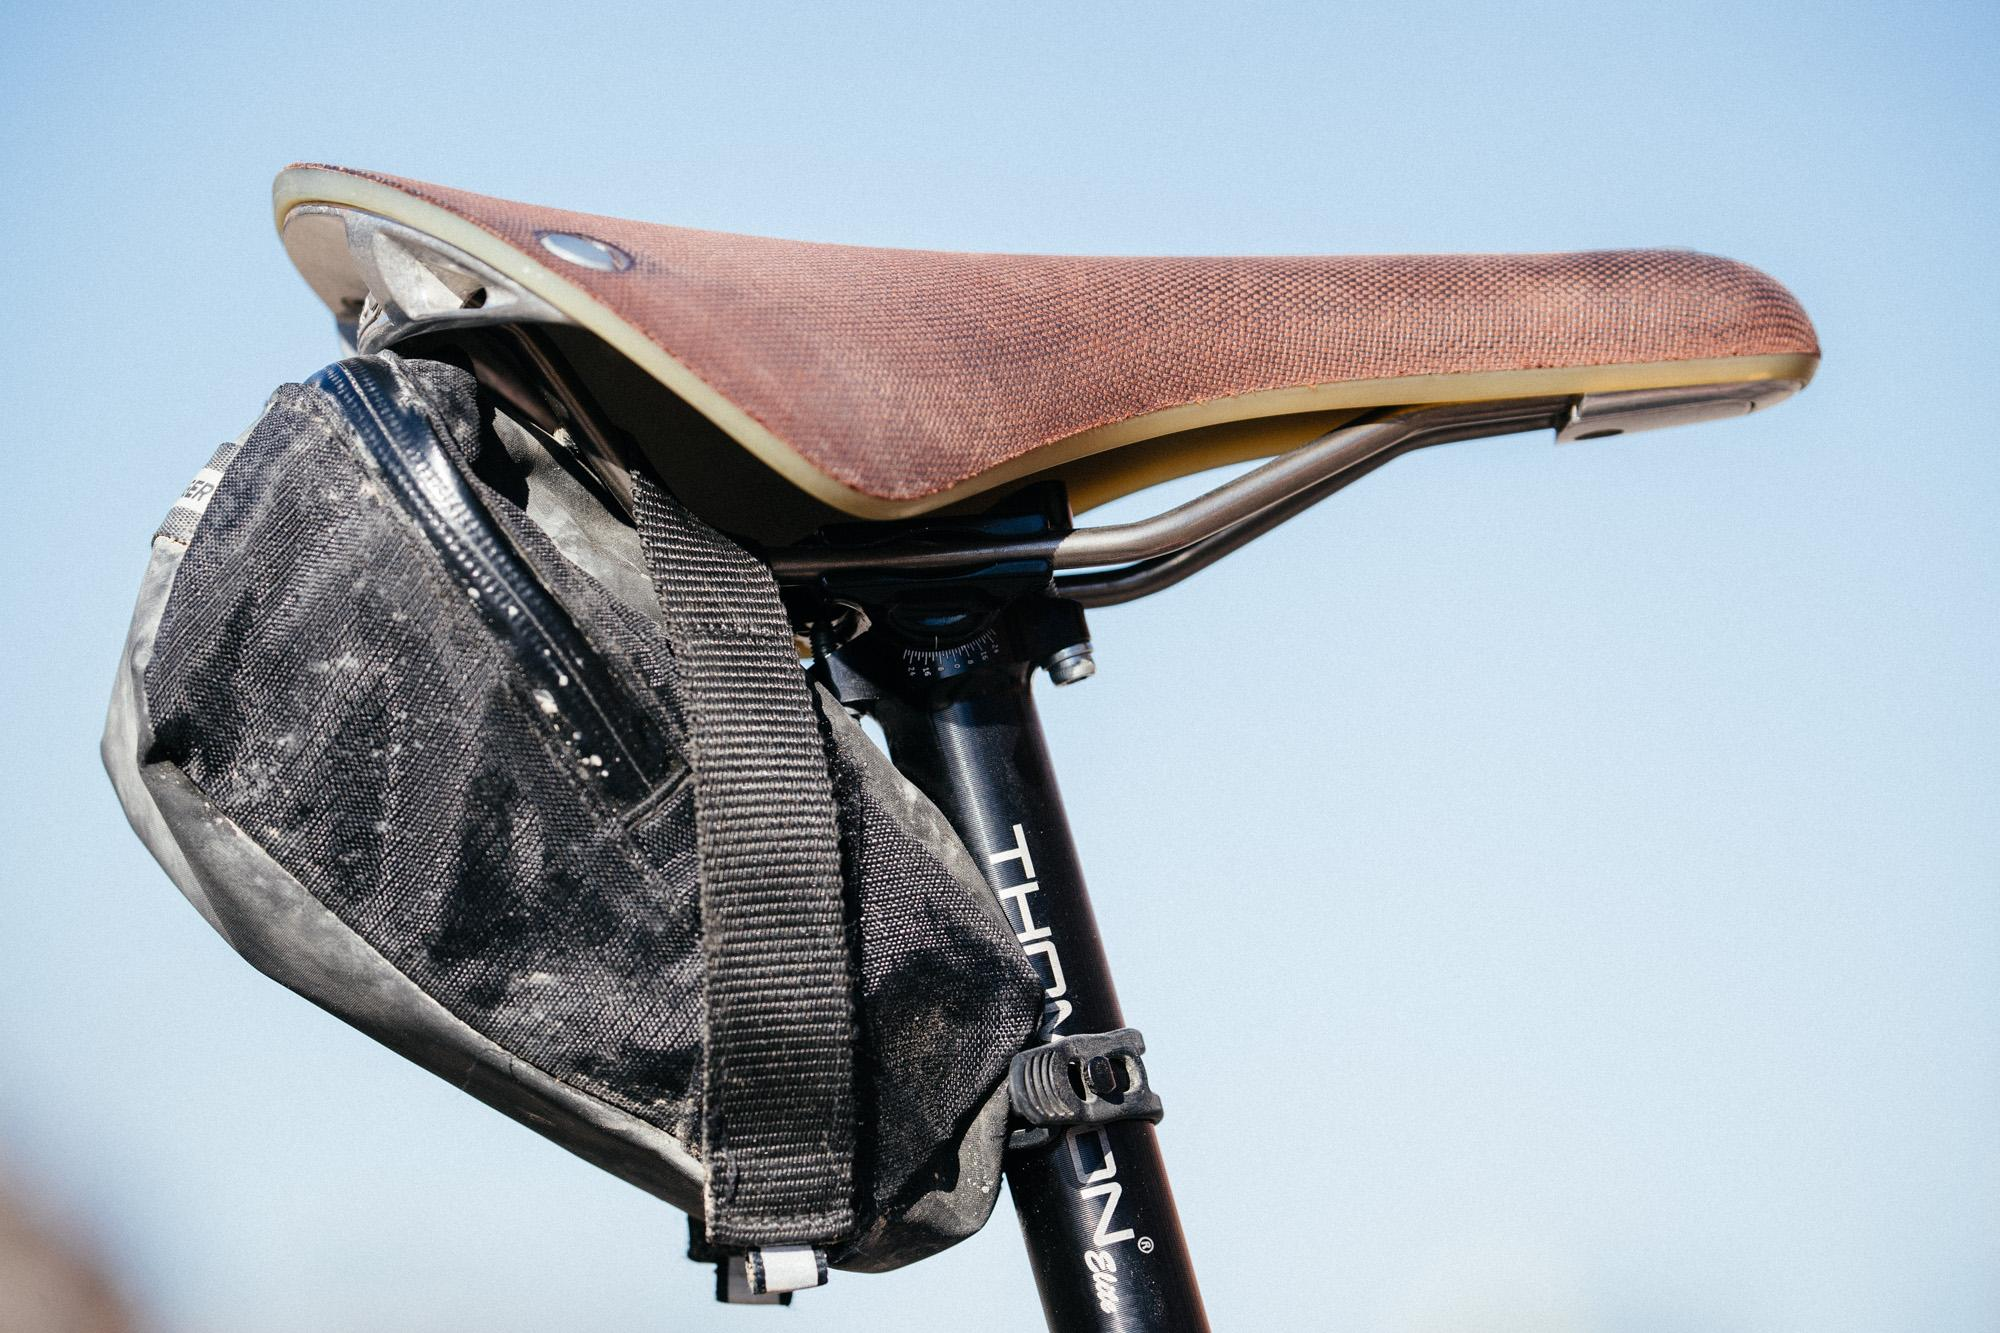 Land Run 100 Rides: Stu's Moots Routt 45 with a Lauf Grit Fork